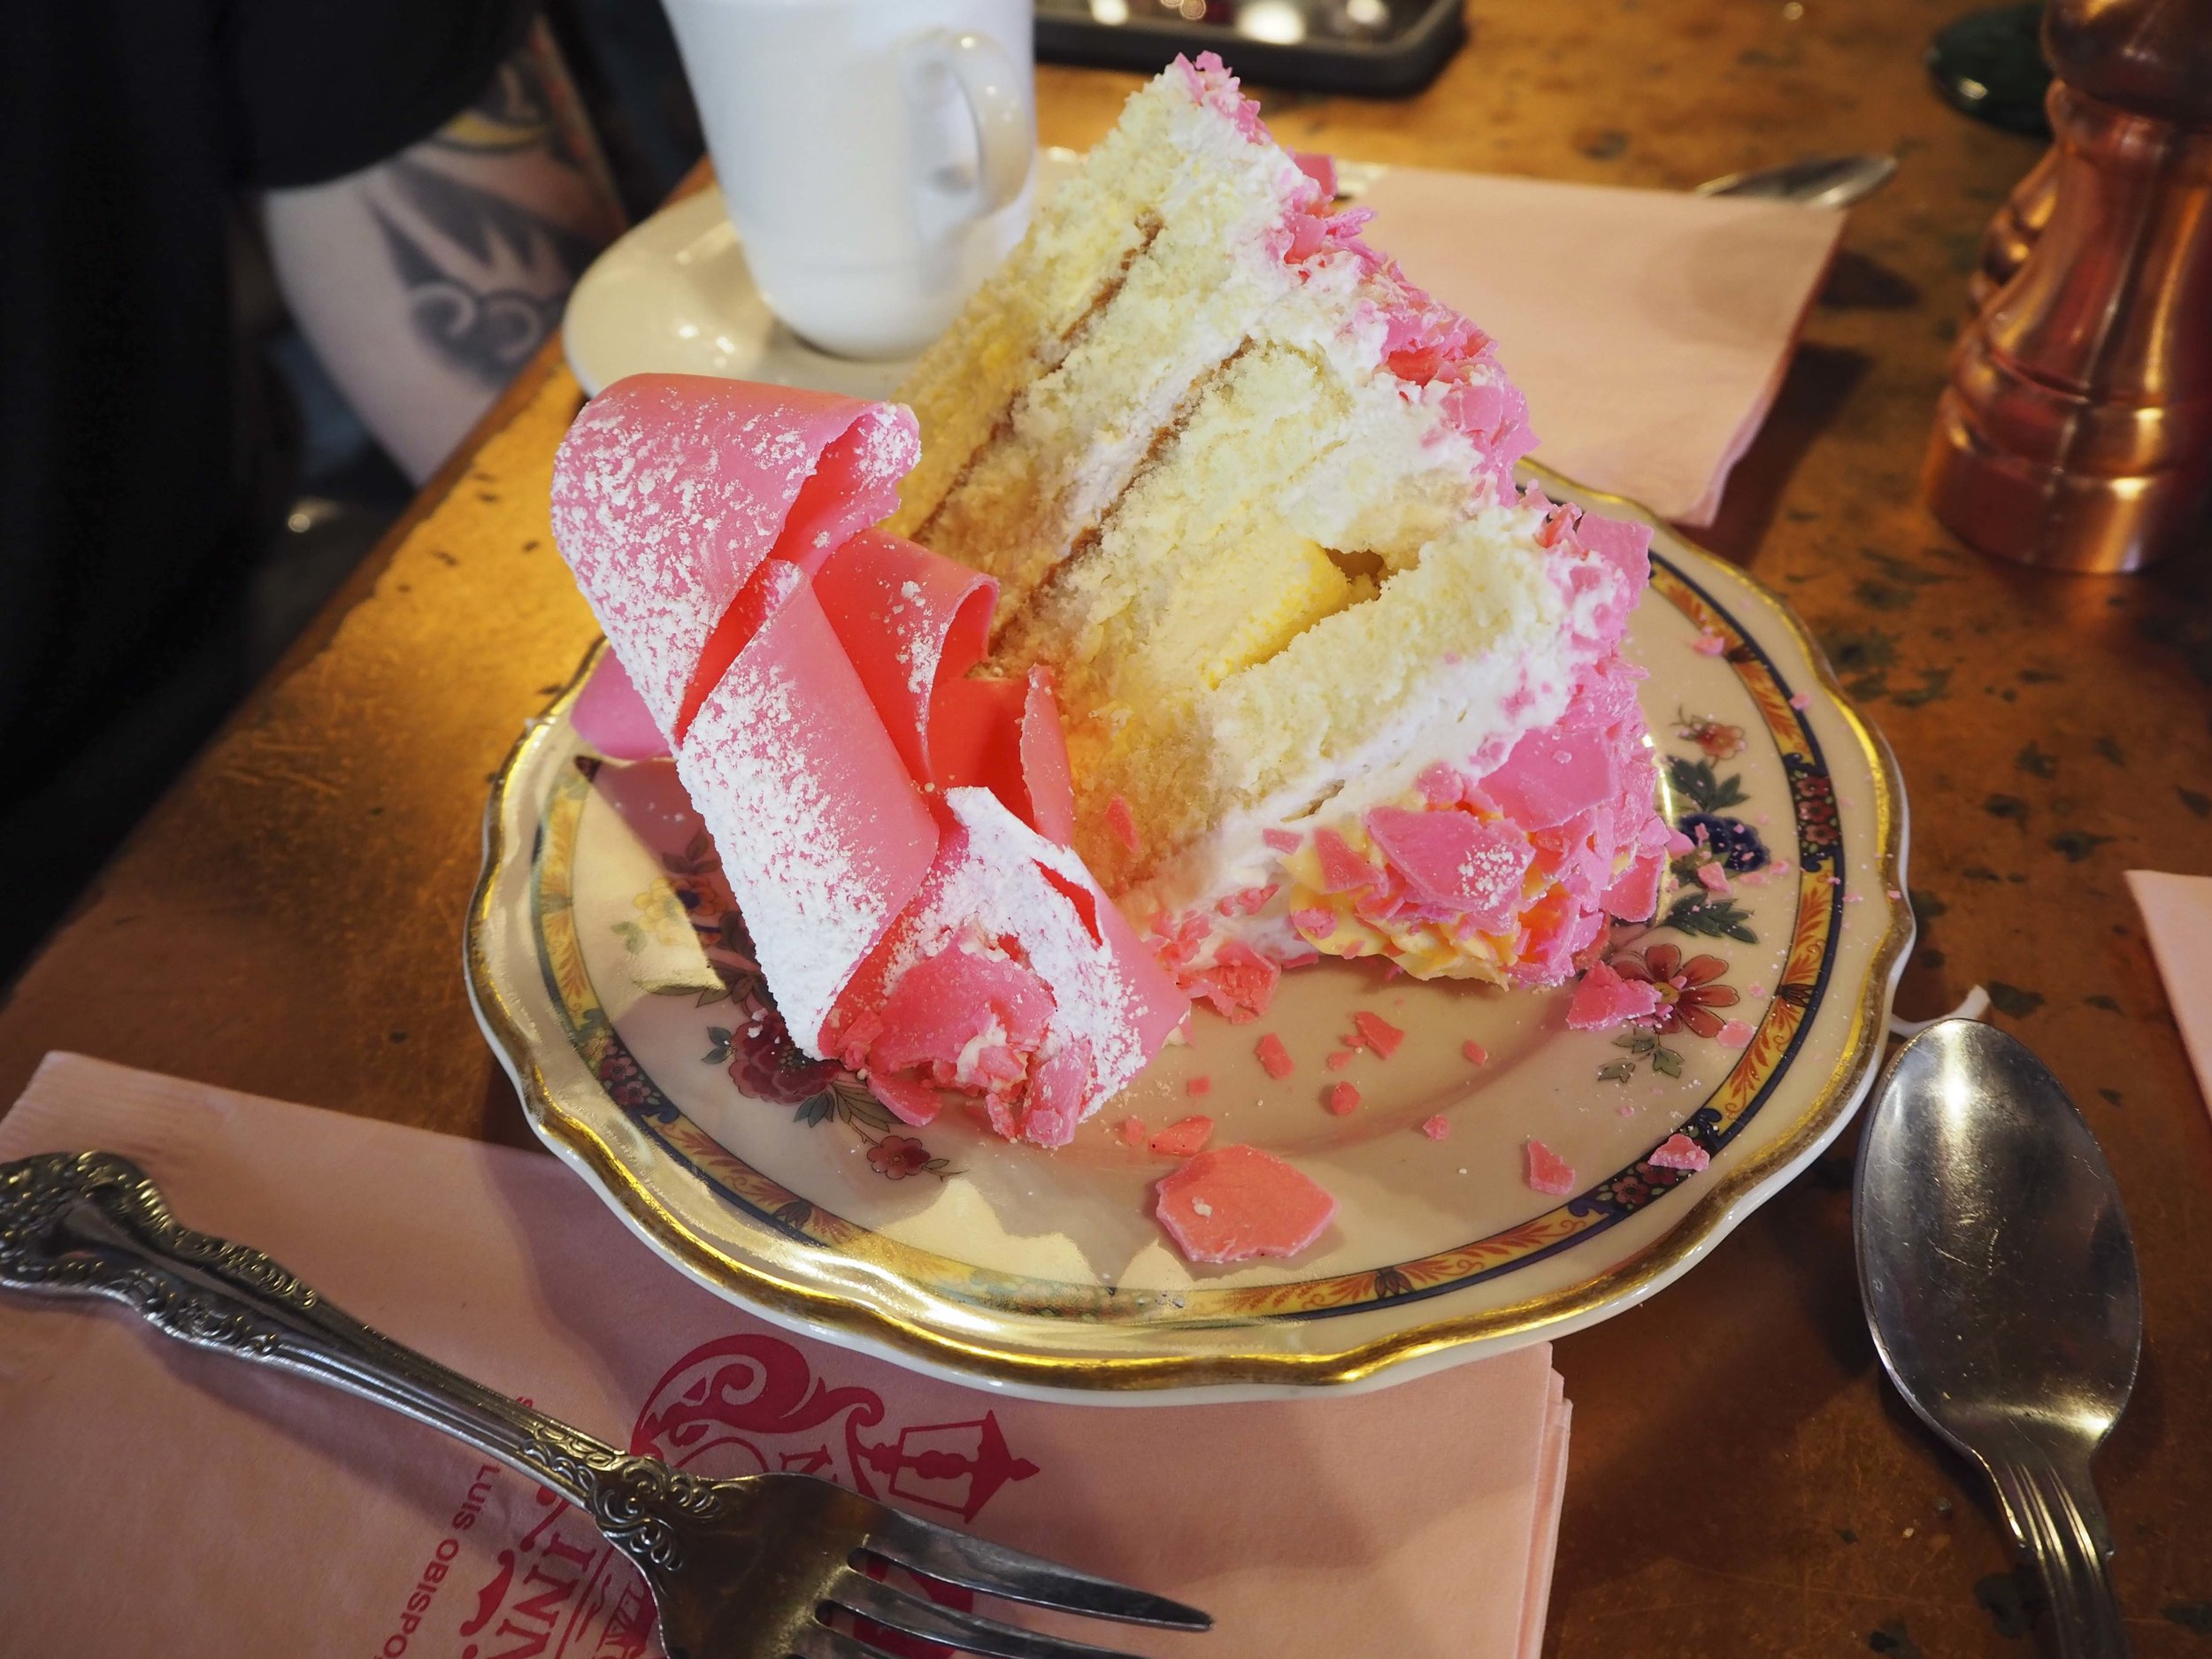 Pink champagne cake for 'breakfast dessert'